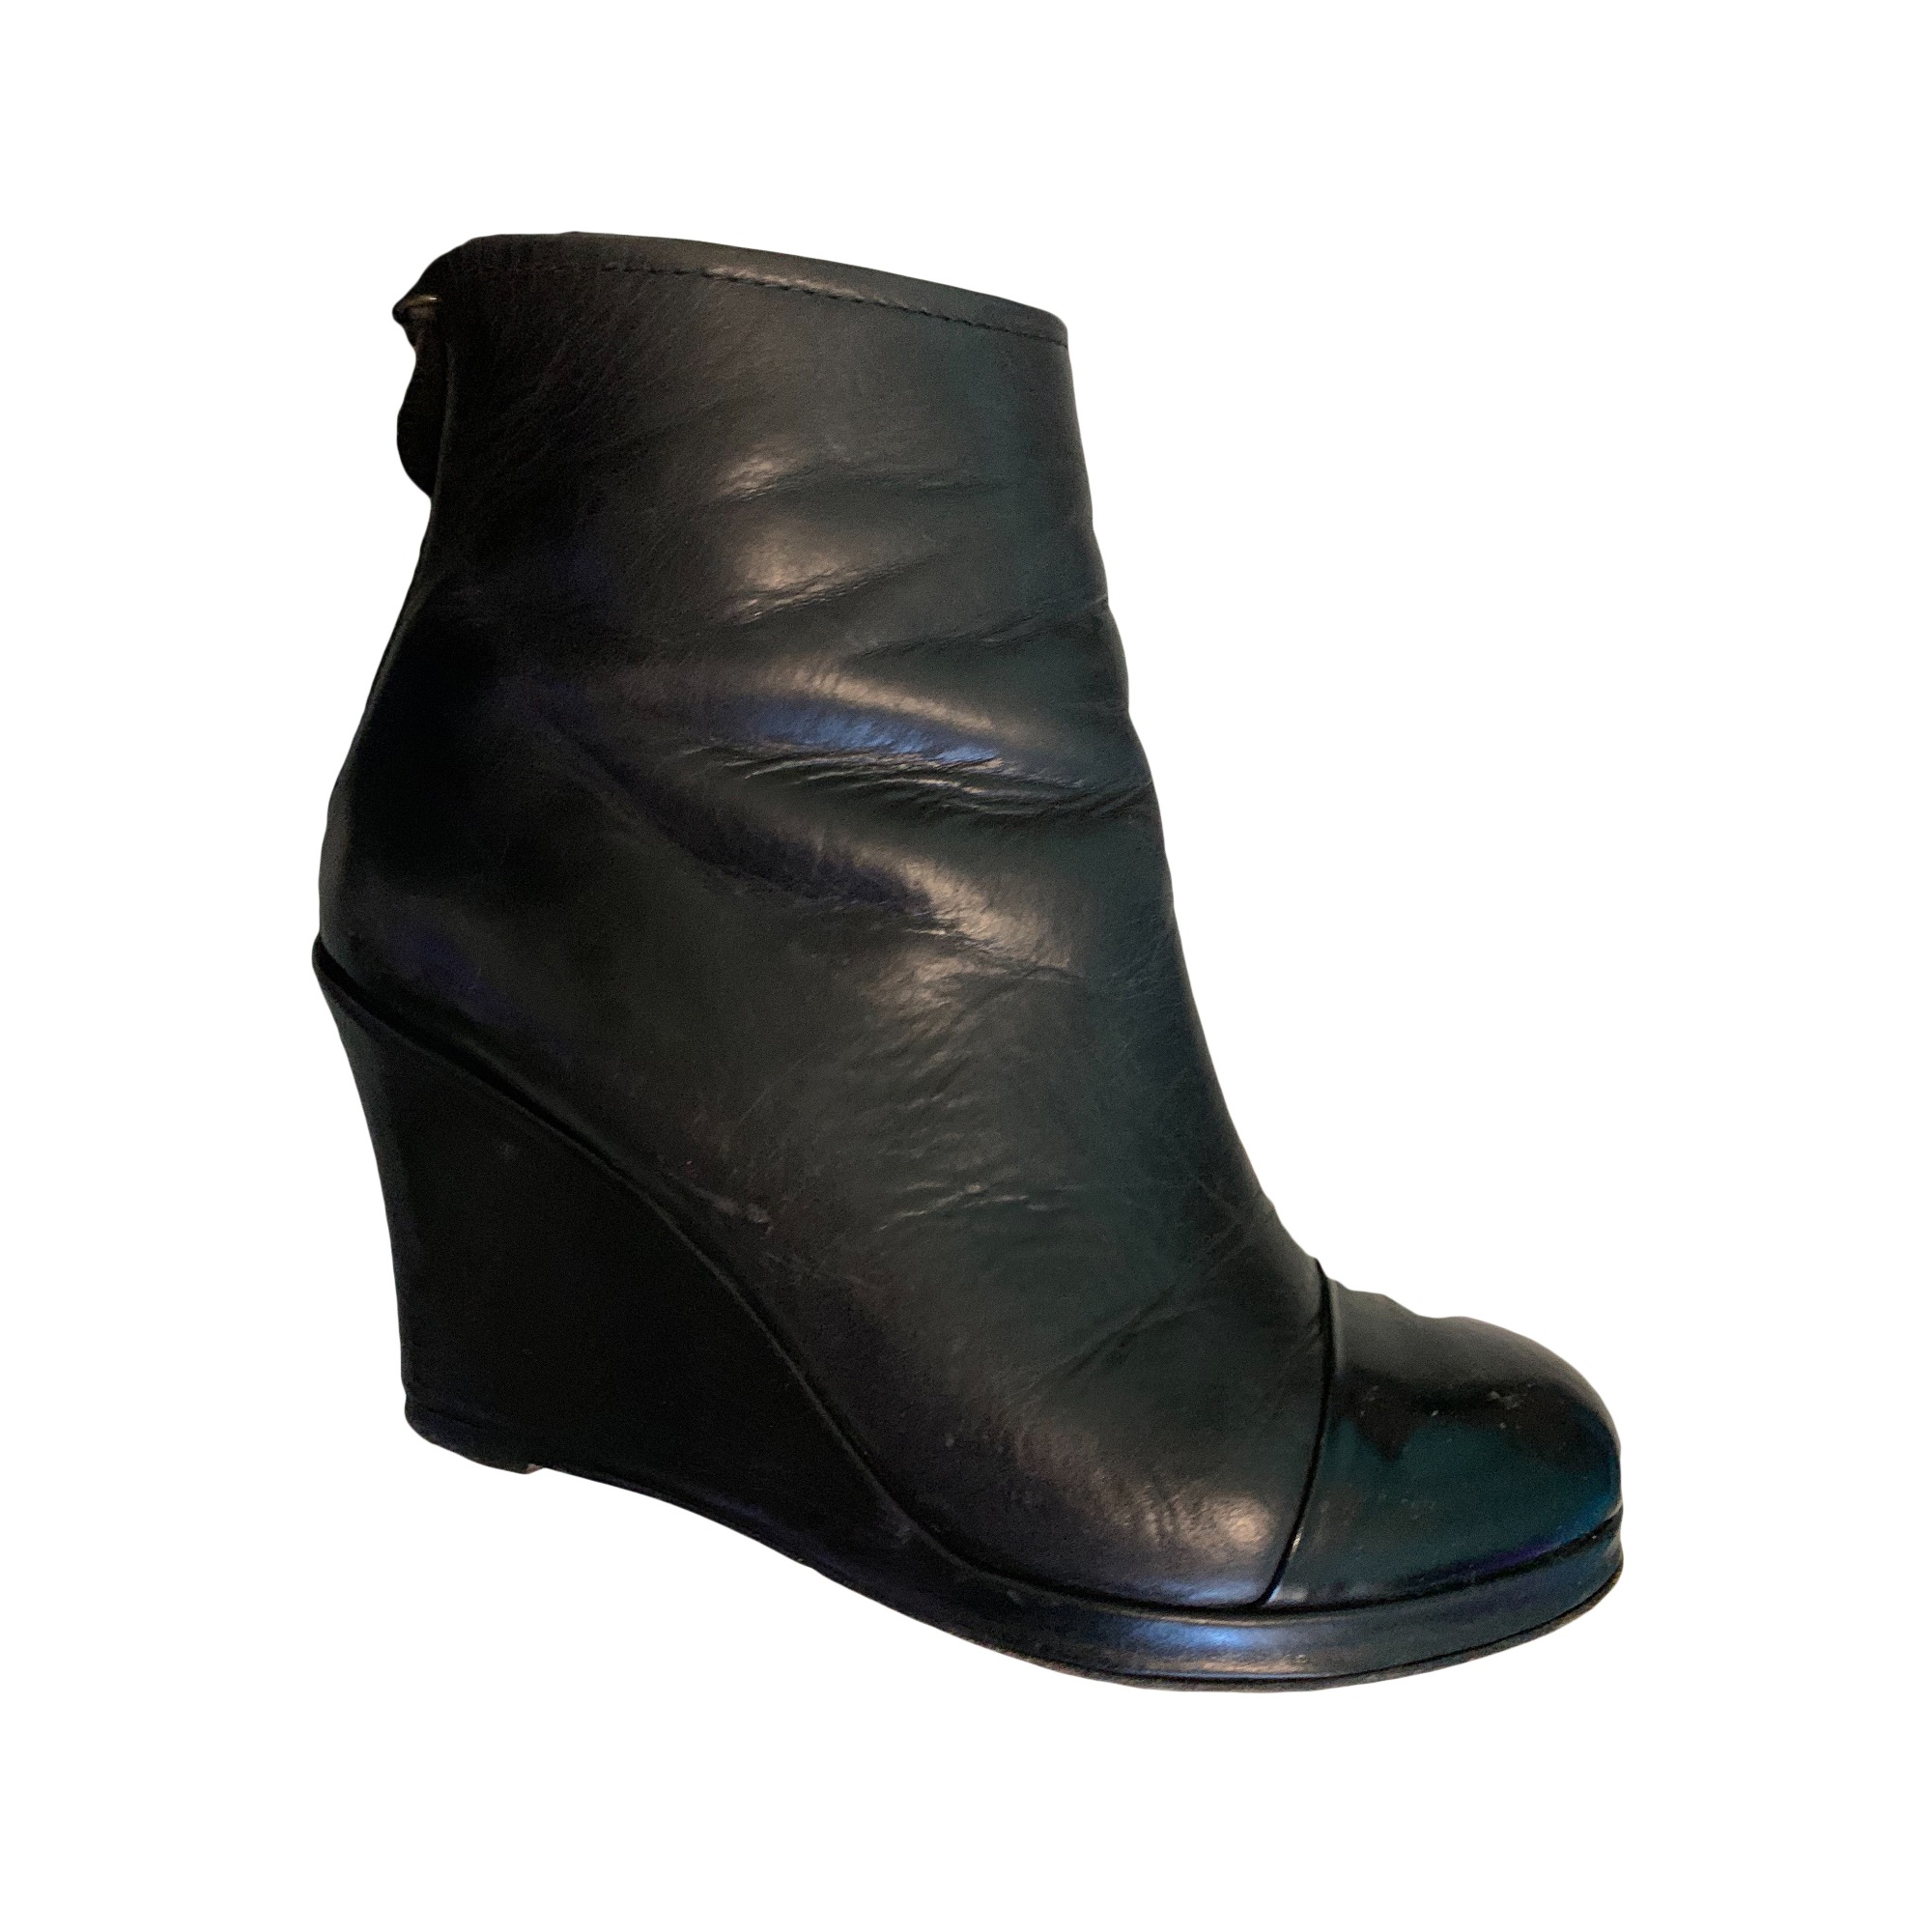 Wedge Ankle Boots GERARD DAREL Black